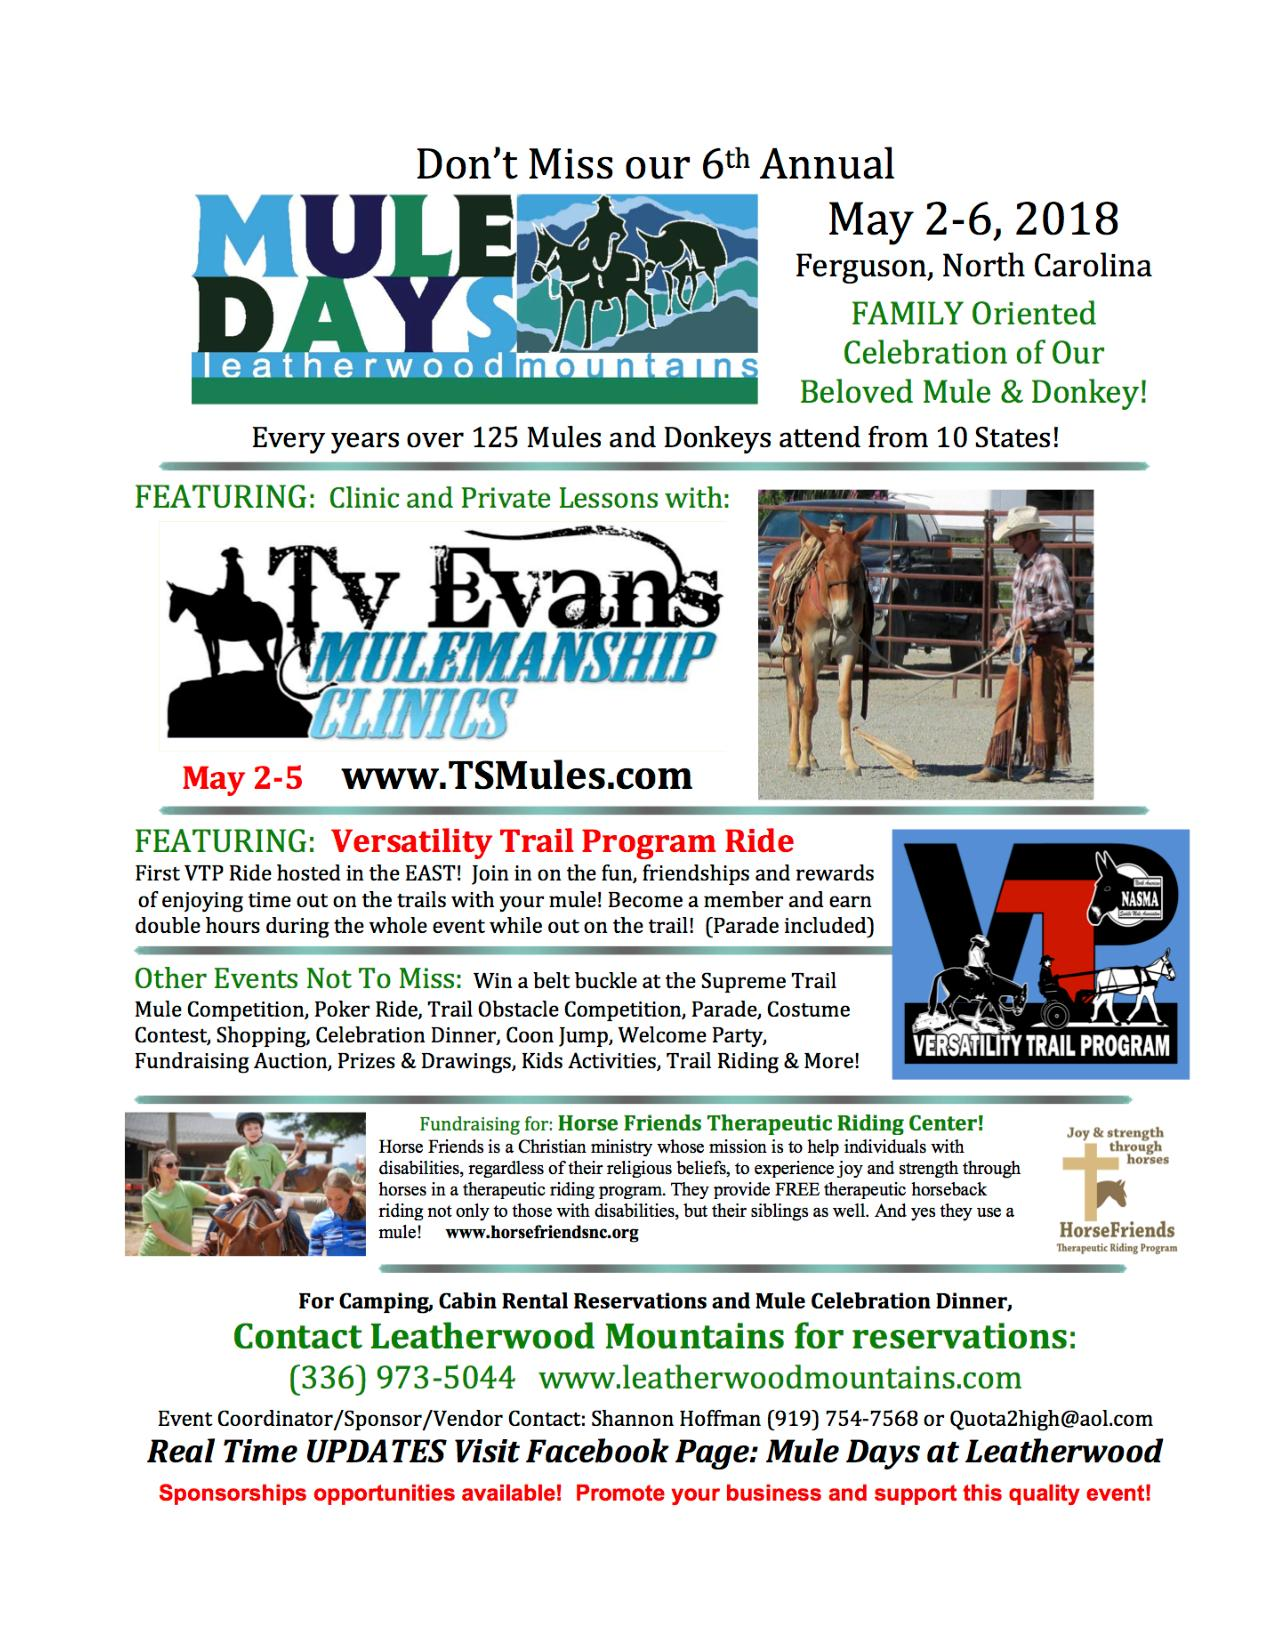 Mule Days at Leatherwood Mountains